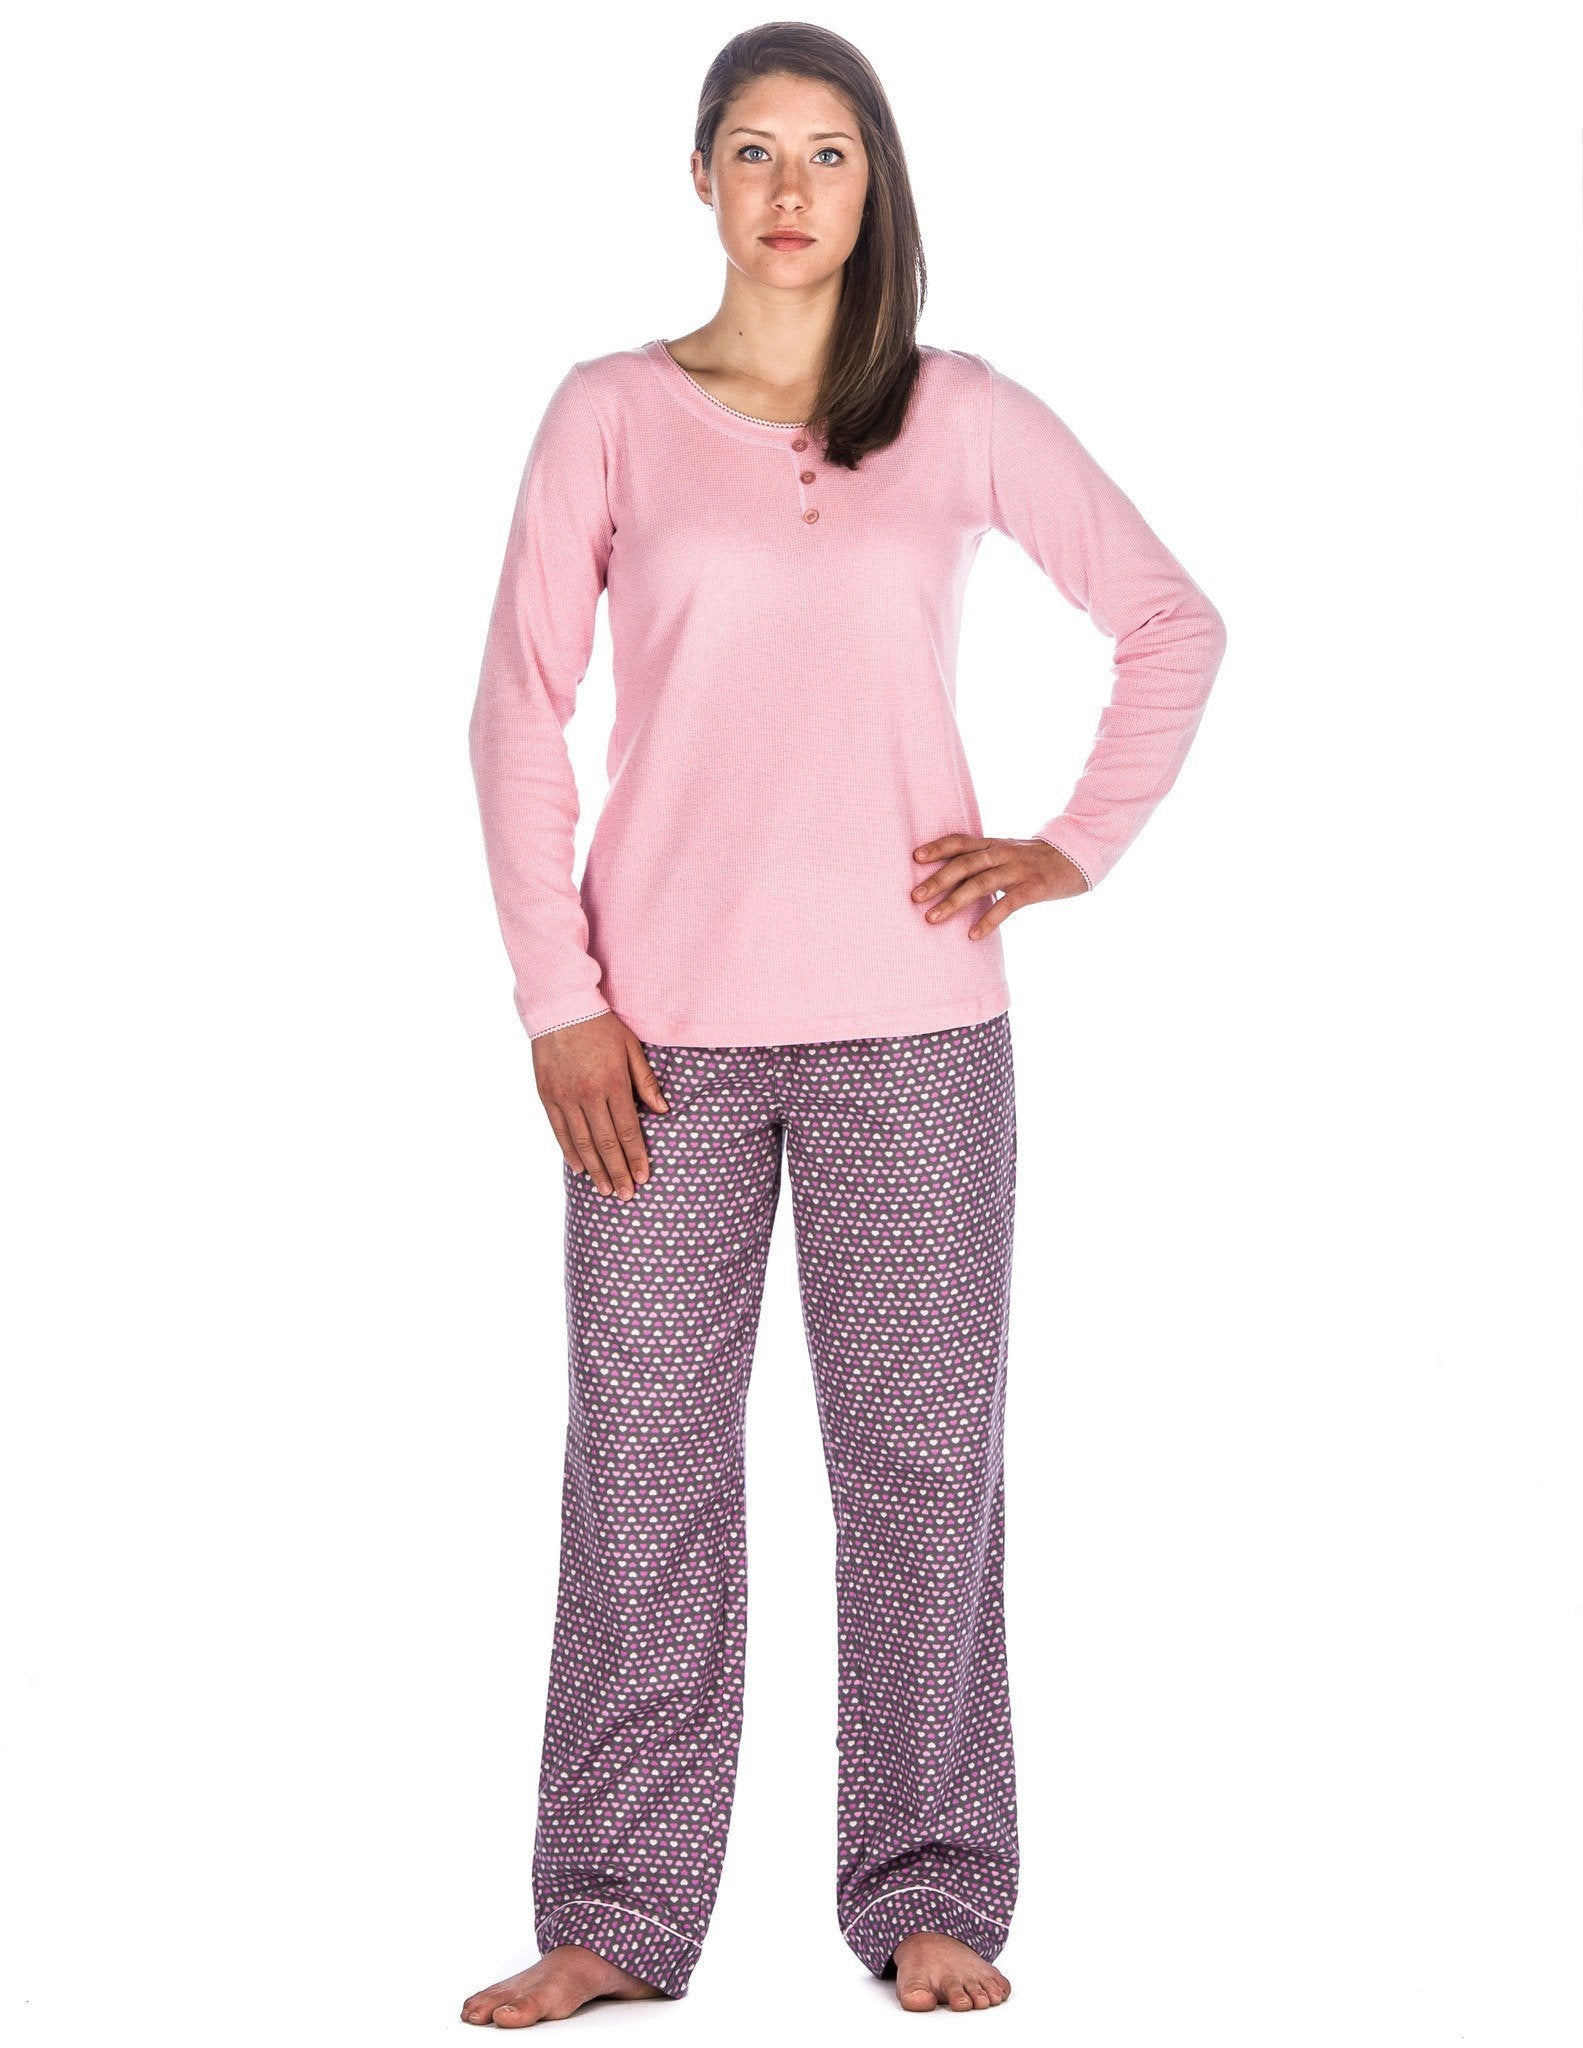 Relaxed Fit Womens Cotton Flannel Lounge Set with Crew Neck Top - Hearts Pink